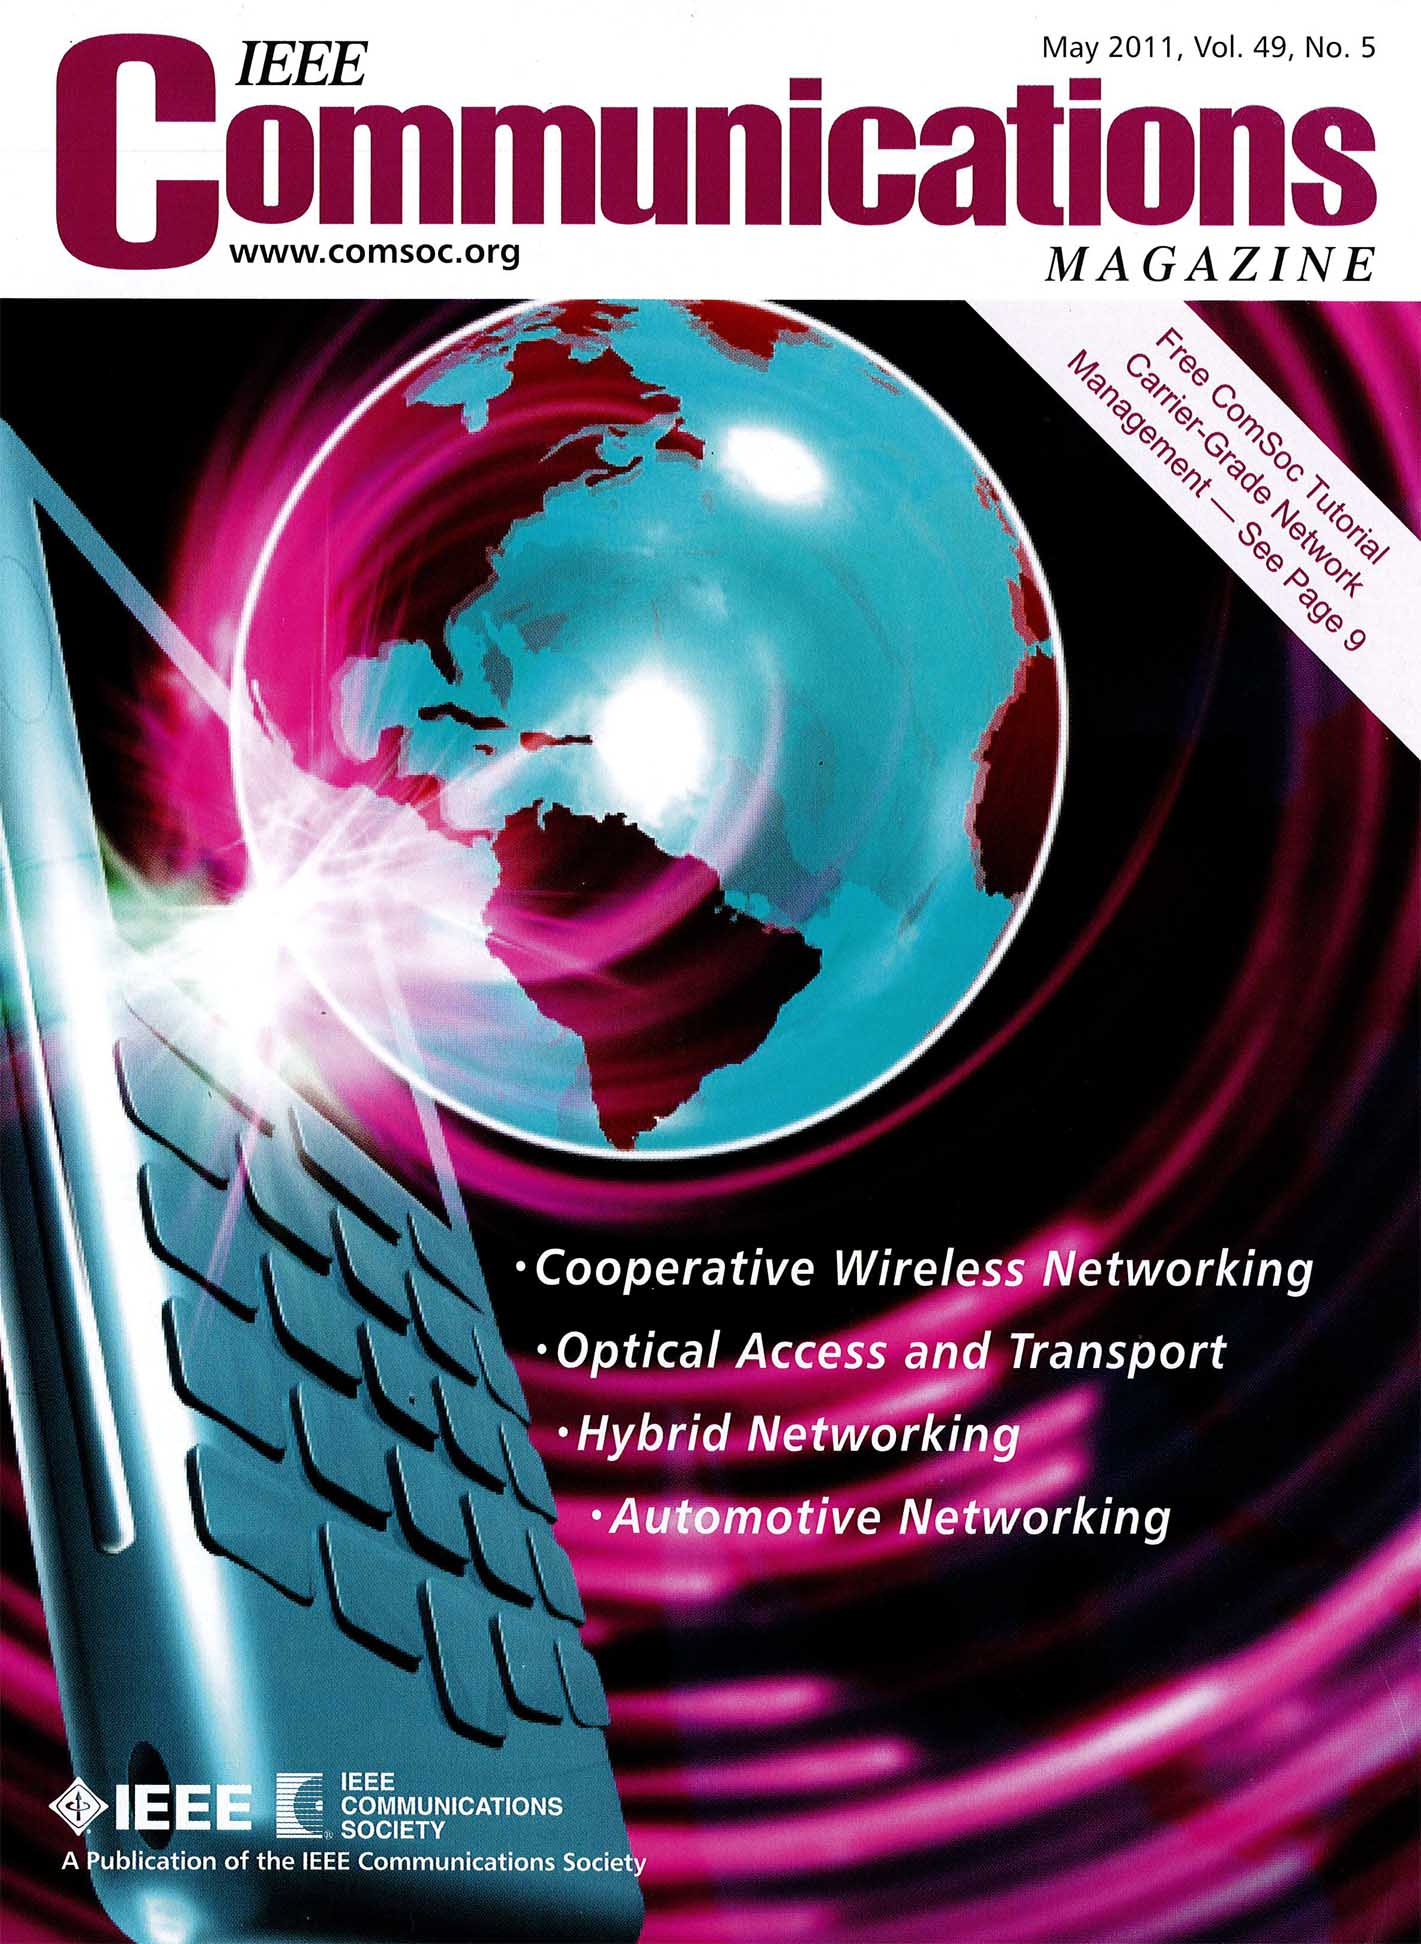 IEEE Communications Magazine Focuses on Hybrid Networking  Special Issue  Features 3 ESnet Co-authored Articles 92987bede